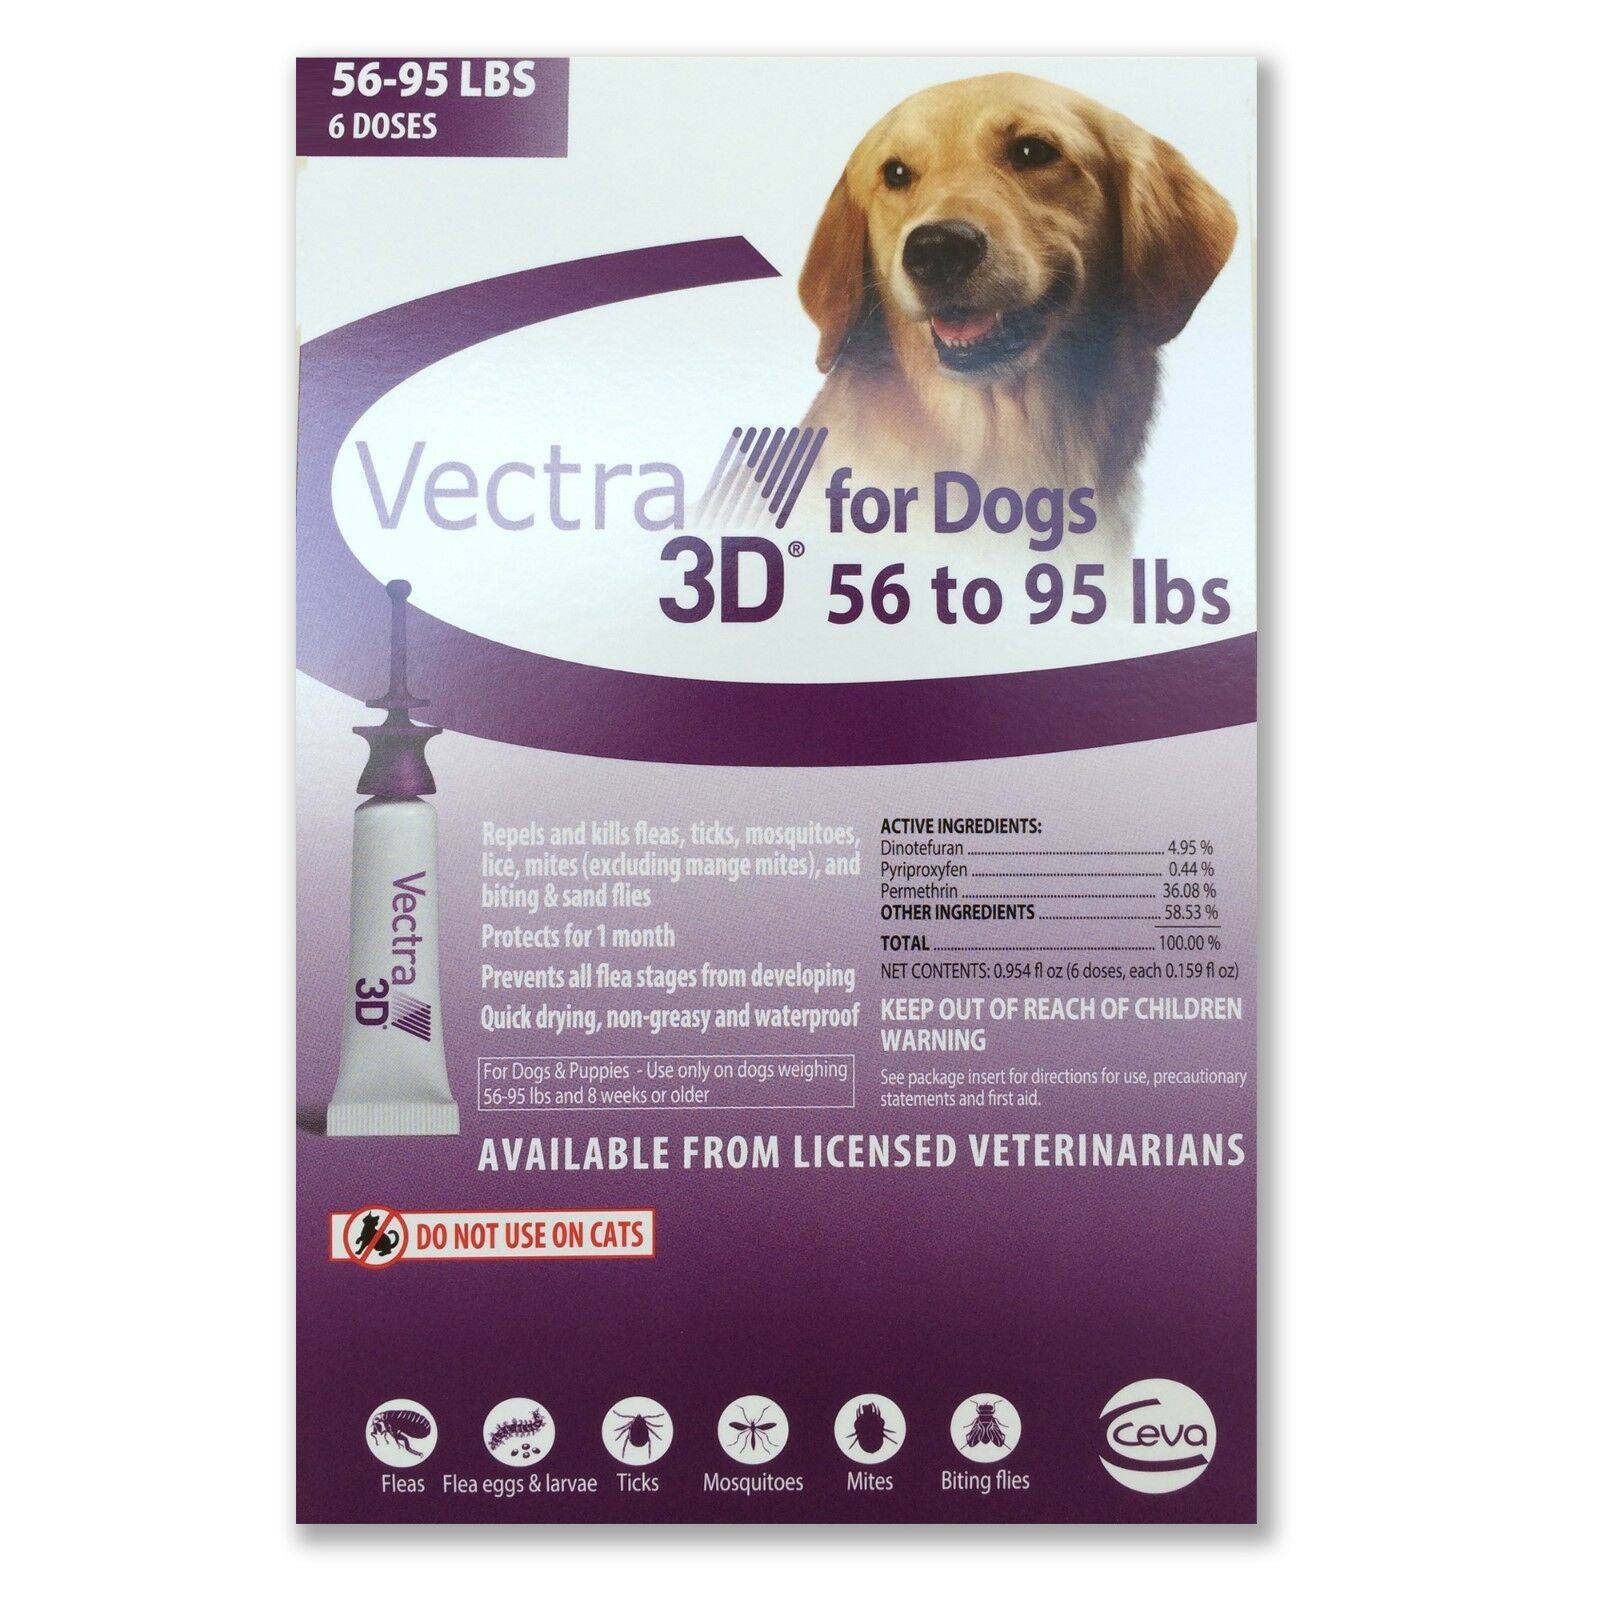 Купить Vectra - Vectra 3D for Large Dogs 56-95 lbs Flea and Tick Treatment 6 Month